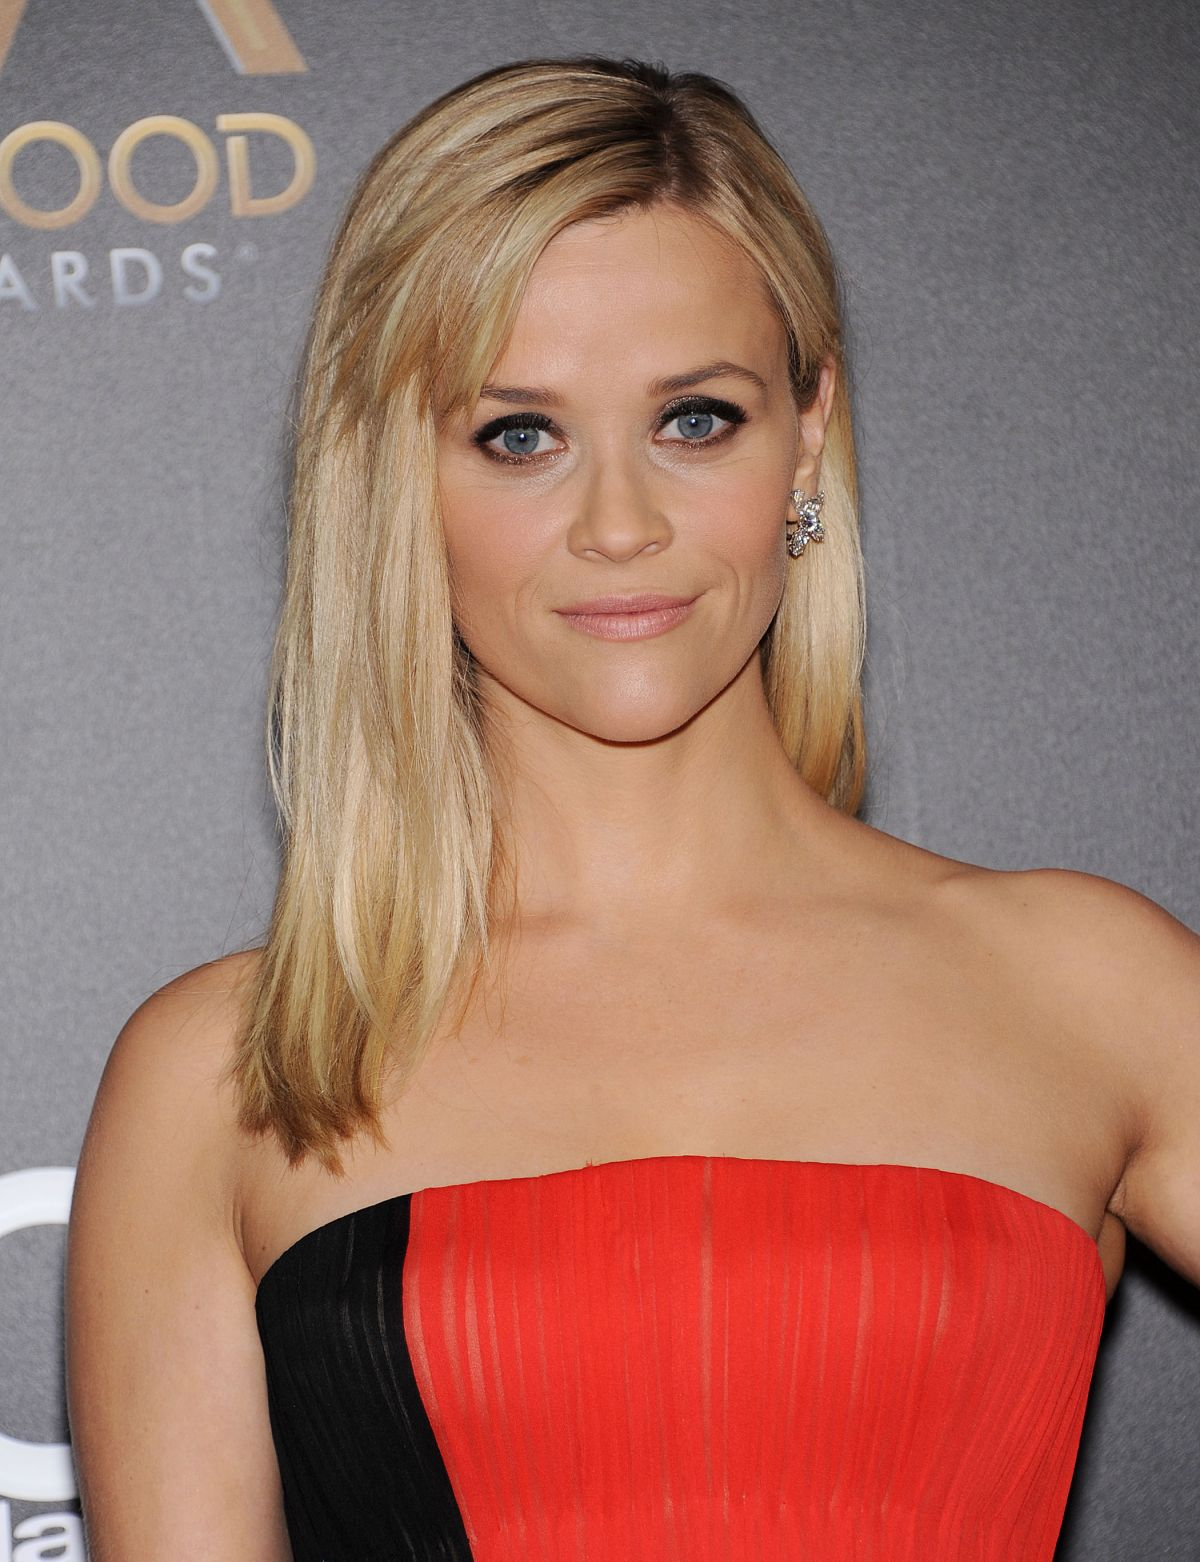 Reese Witherspoon At The 2014 Hollywood Film Awards ... Reese Witherspoon